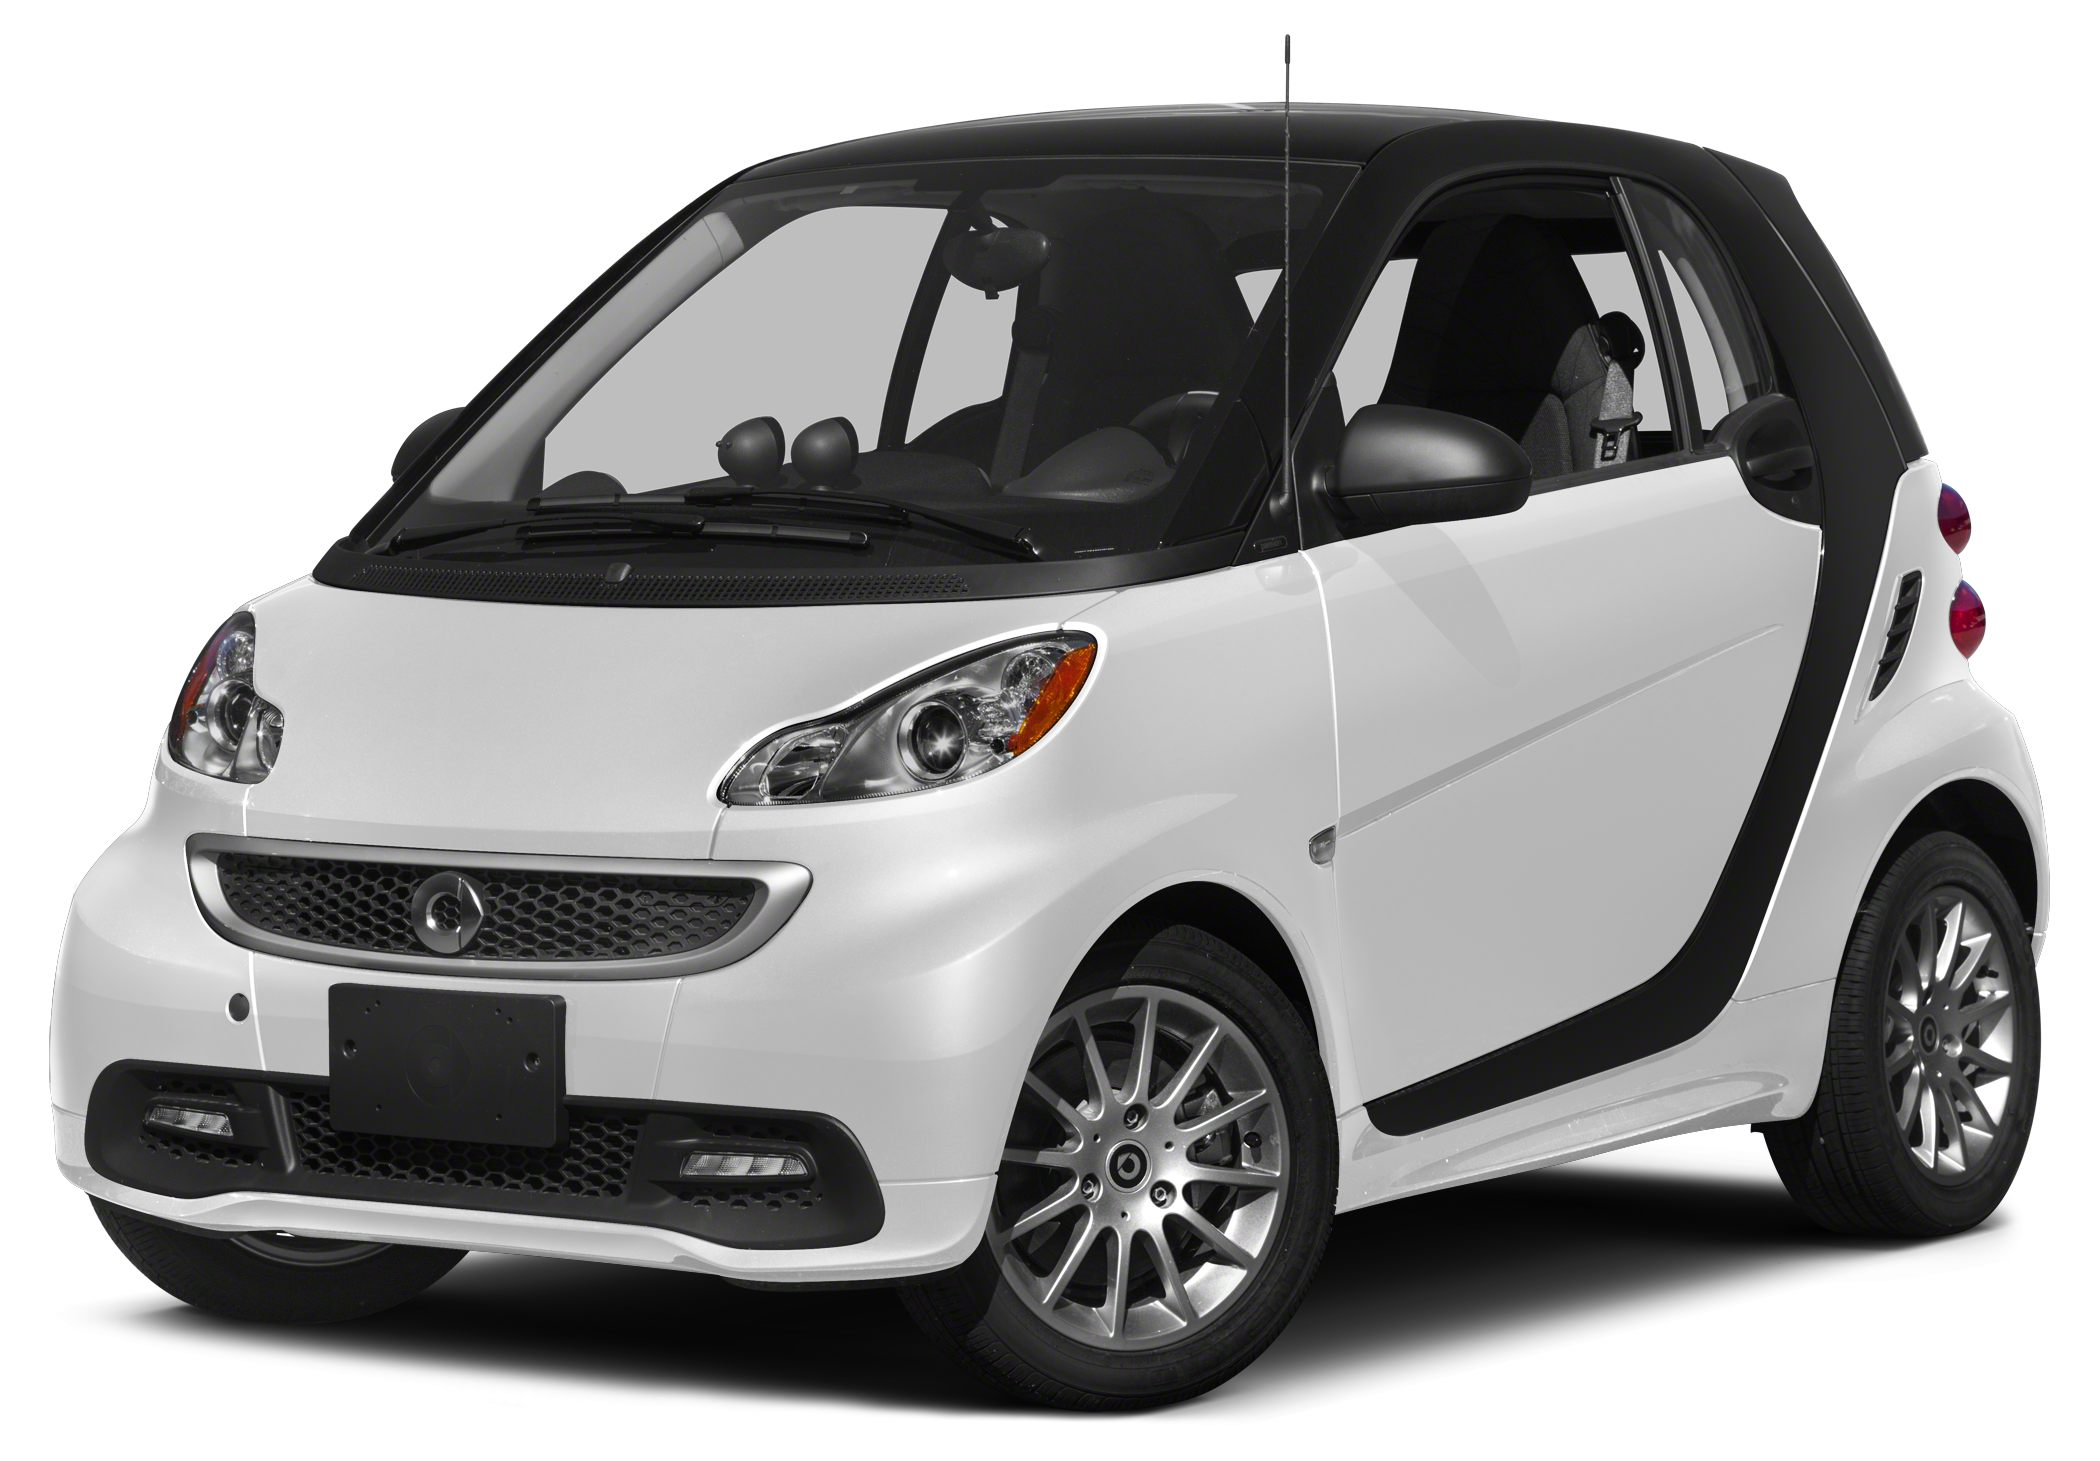 2015 smart fortwo passion This 2015 smart Fortwo 2dr 2dr Coupe Passion features a 10L 3 CYLINDER